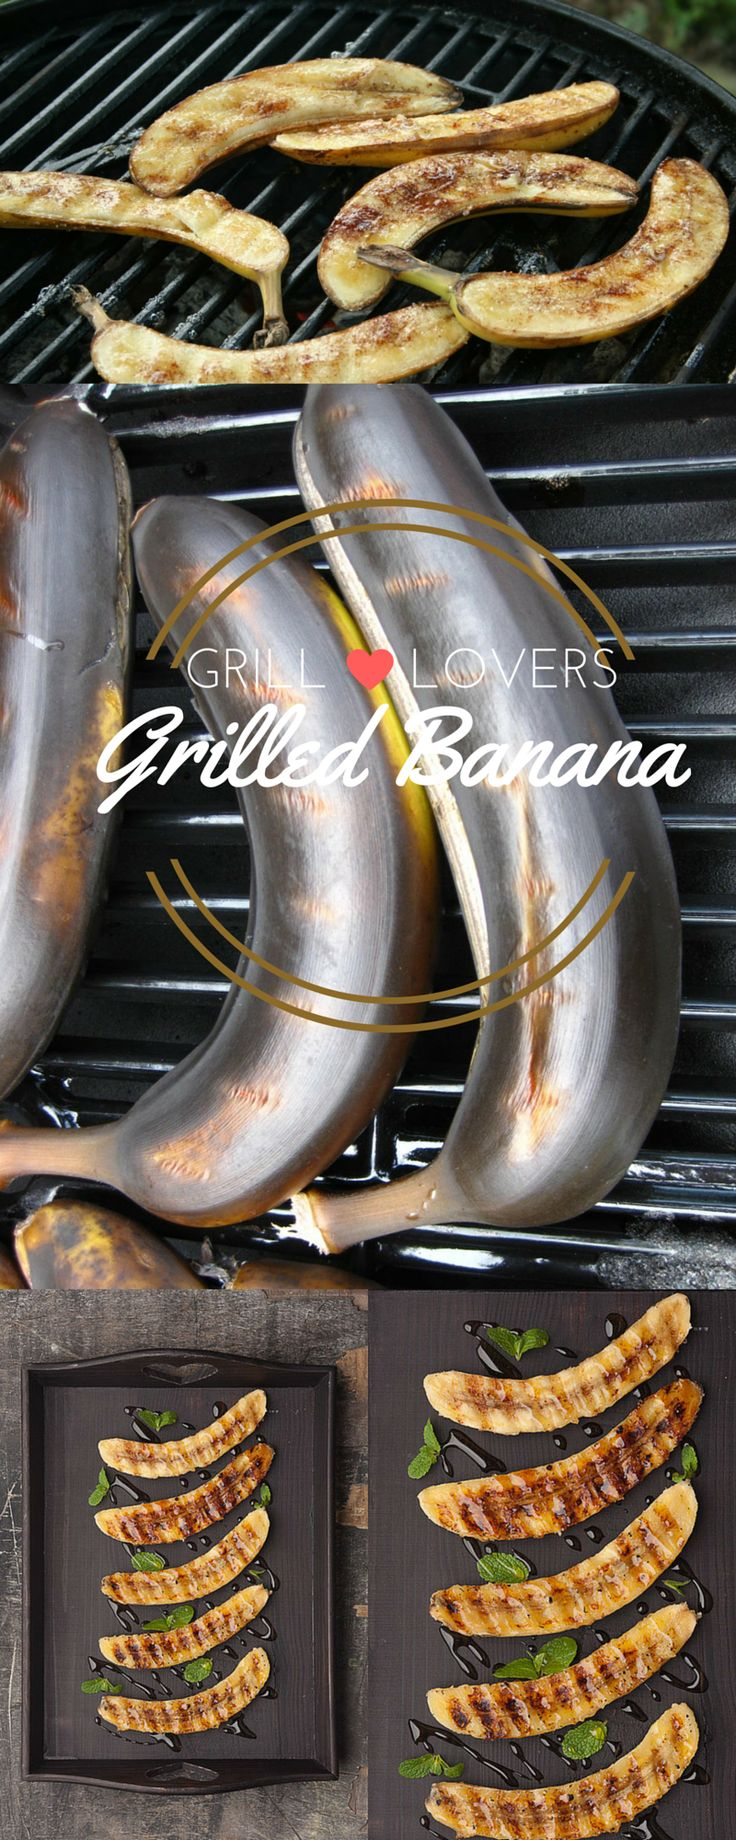 Grill Lovers' Amazing Grilled Bananas Recipe   #recipes #foodporn #foodie…